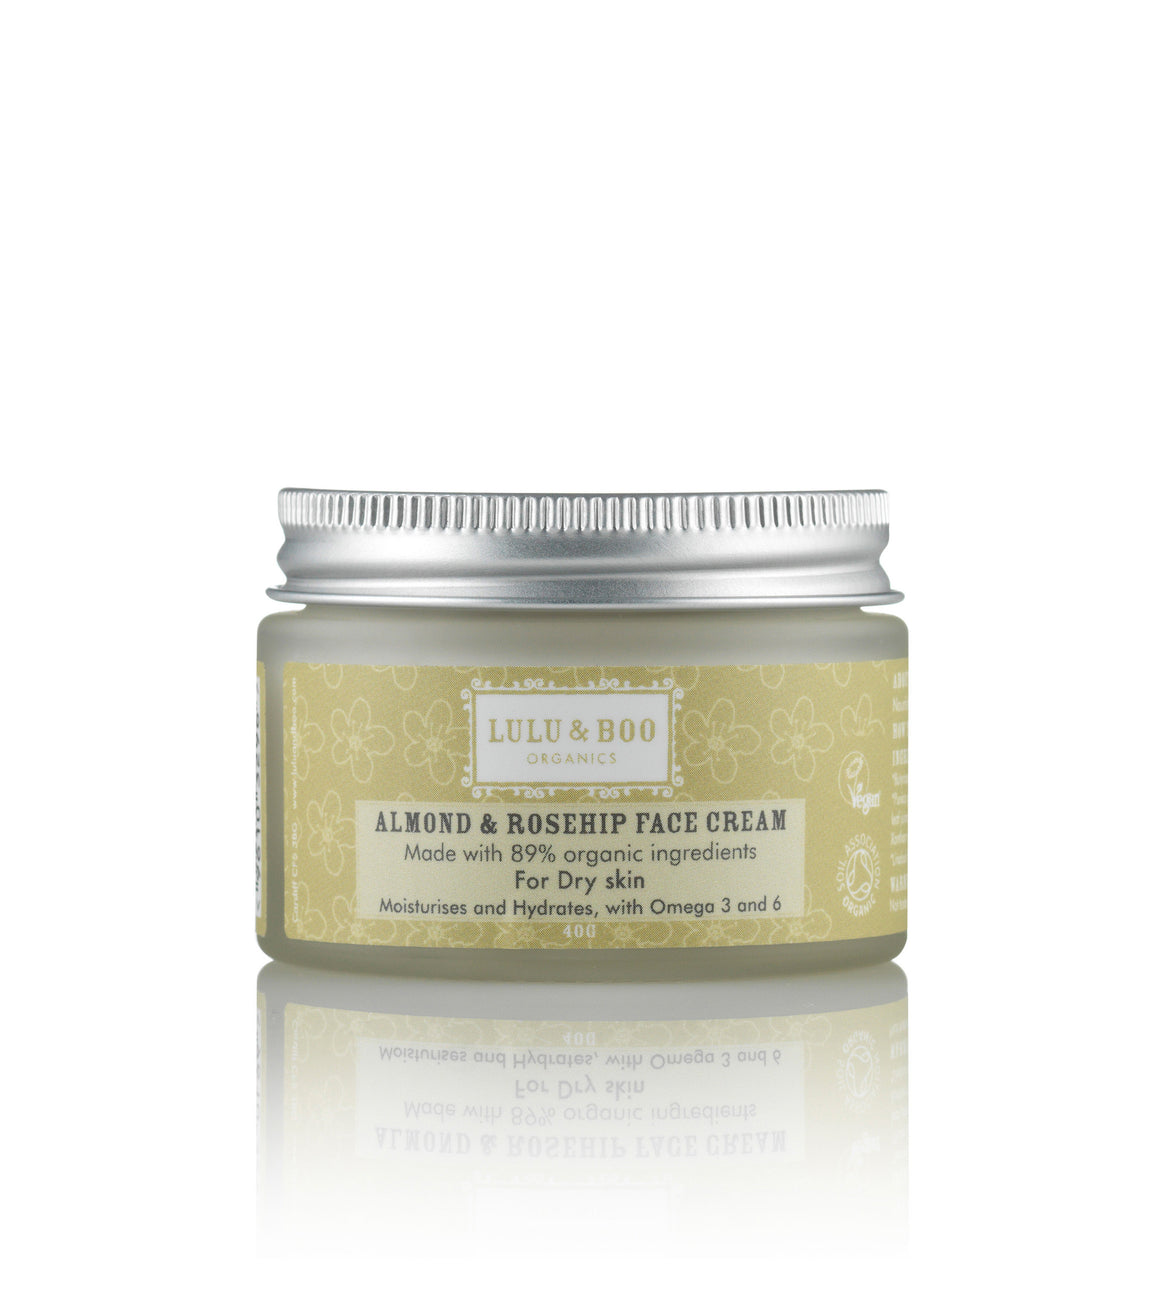 Almond & Rosehip Face Cream Image